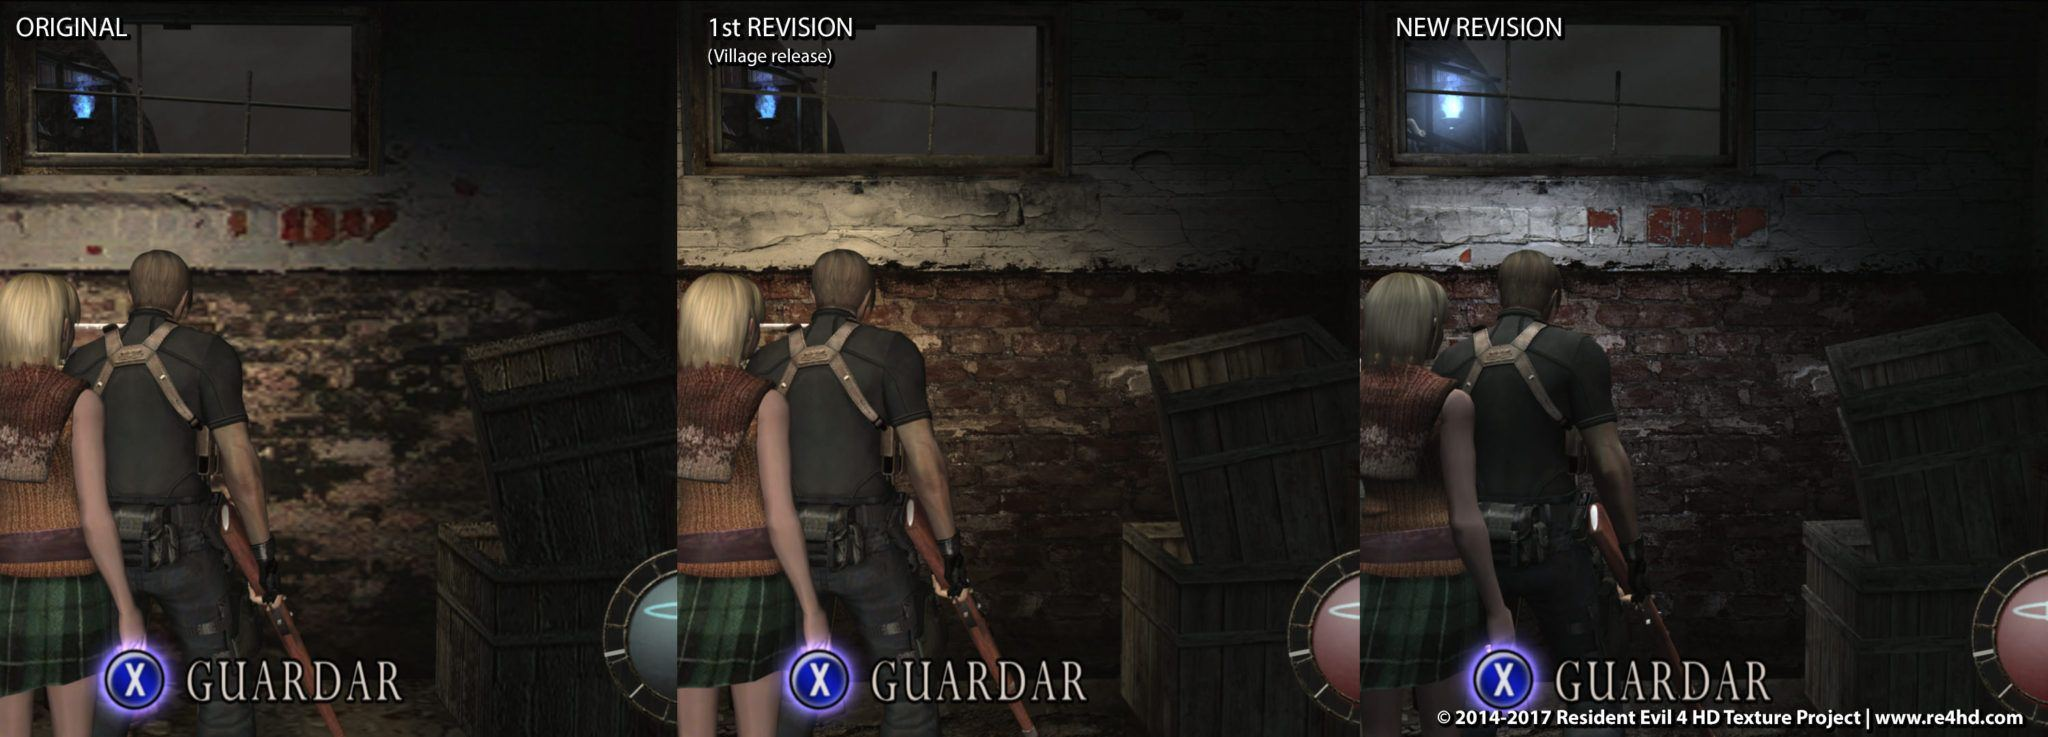 Resident Evil 4 HD Mod Project Revealed New Improved Screen-shots